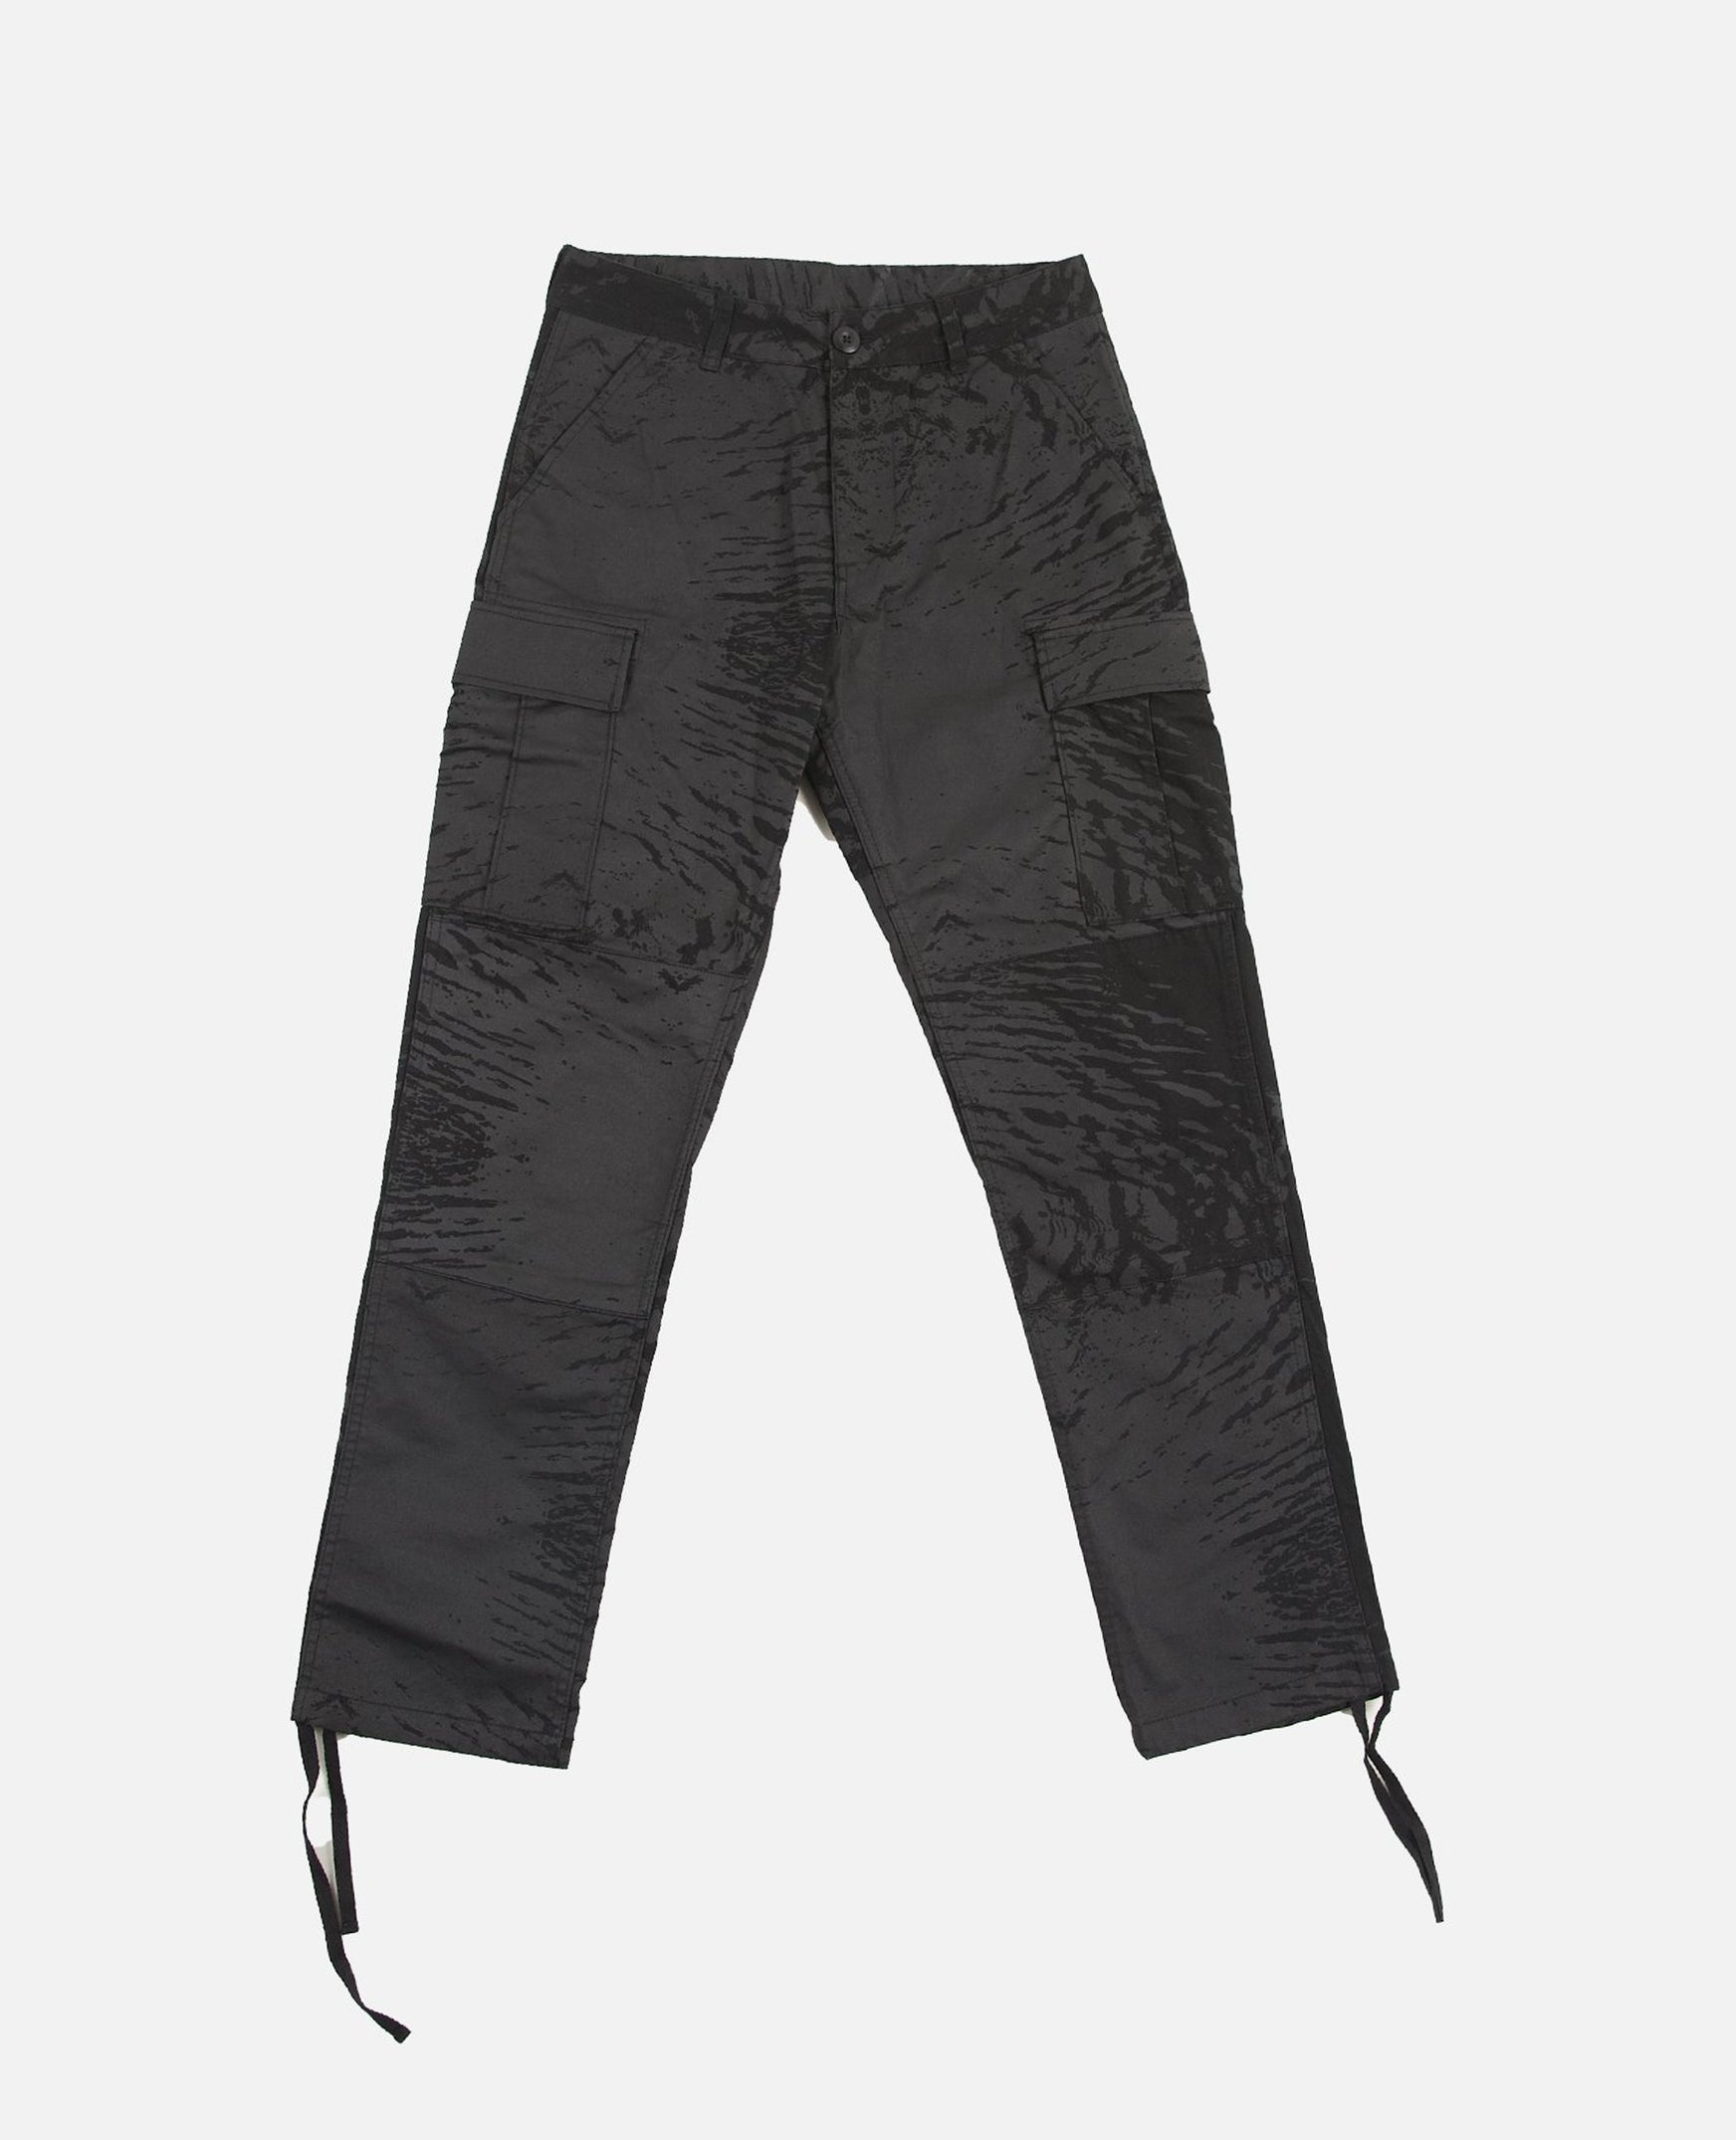 Patta Water Camo Cargo Pants (Black/Black)